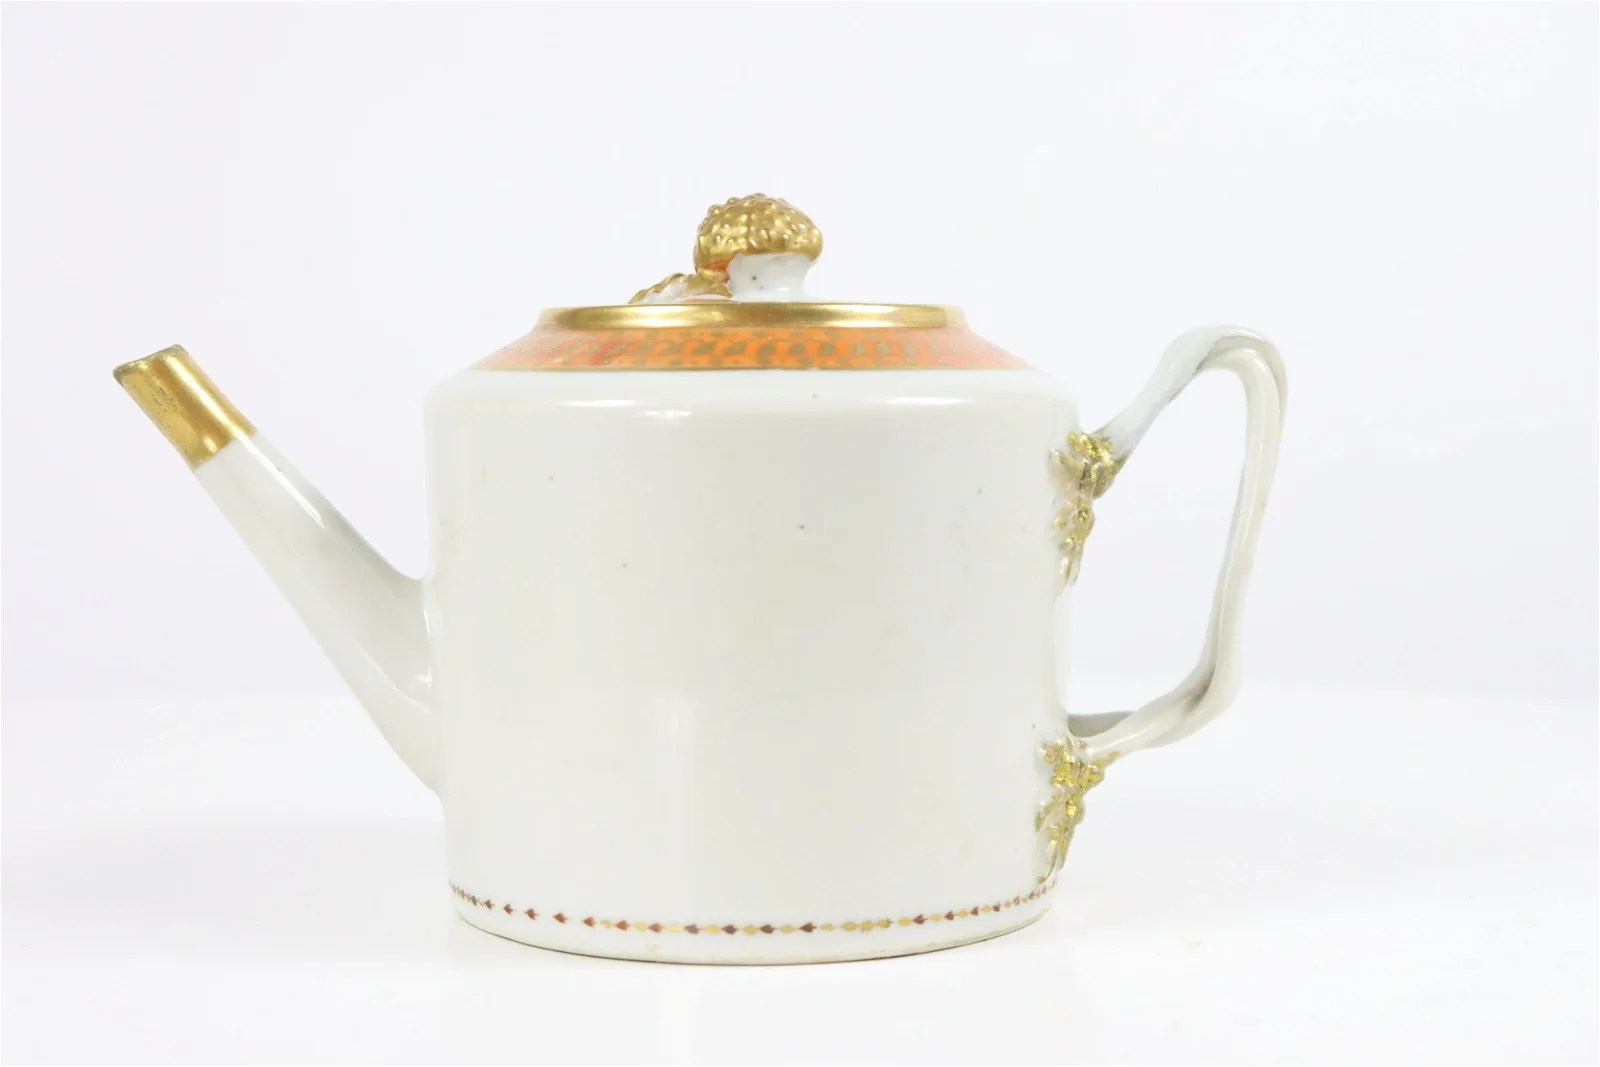 Chinese Export Teapot, 18th/19th C